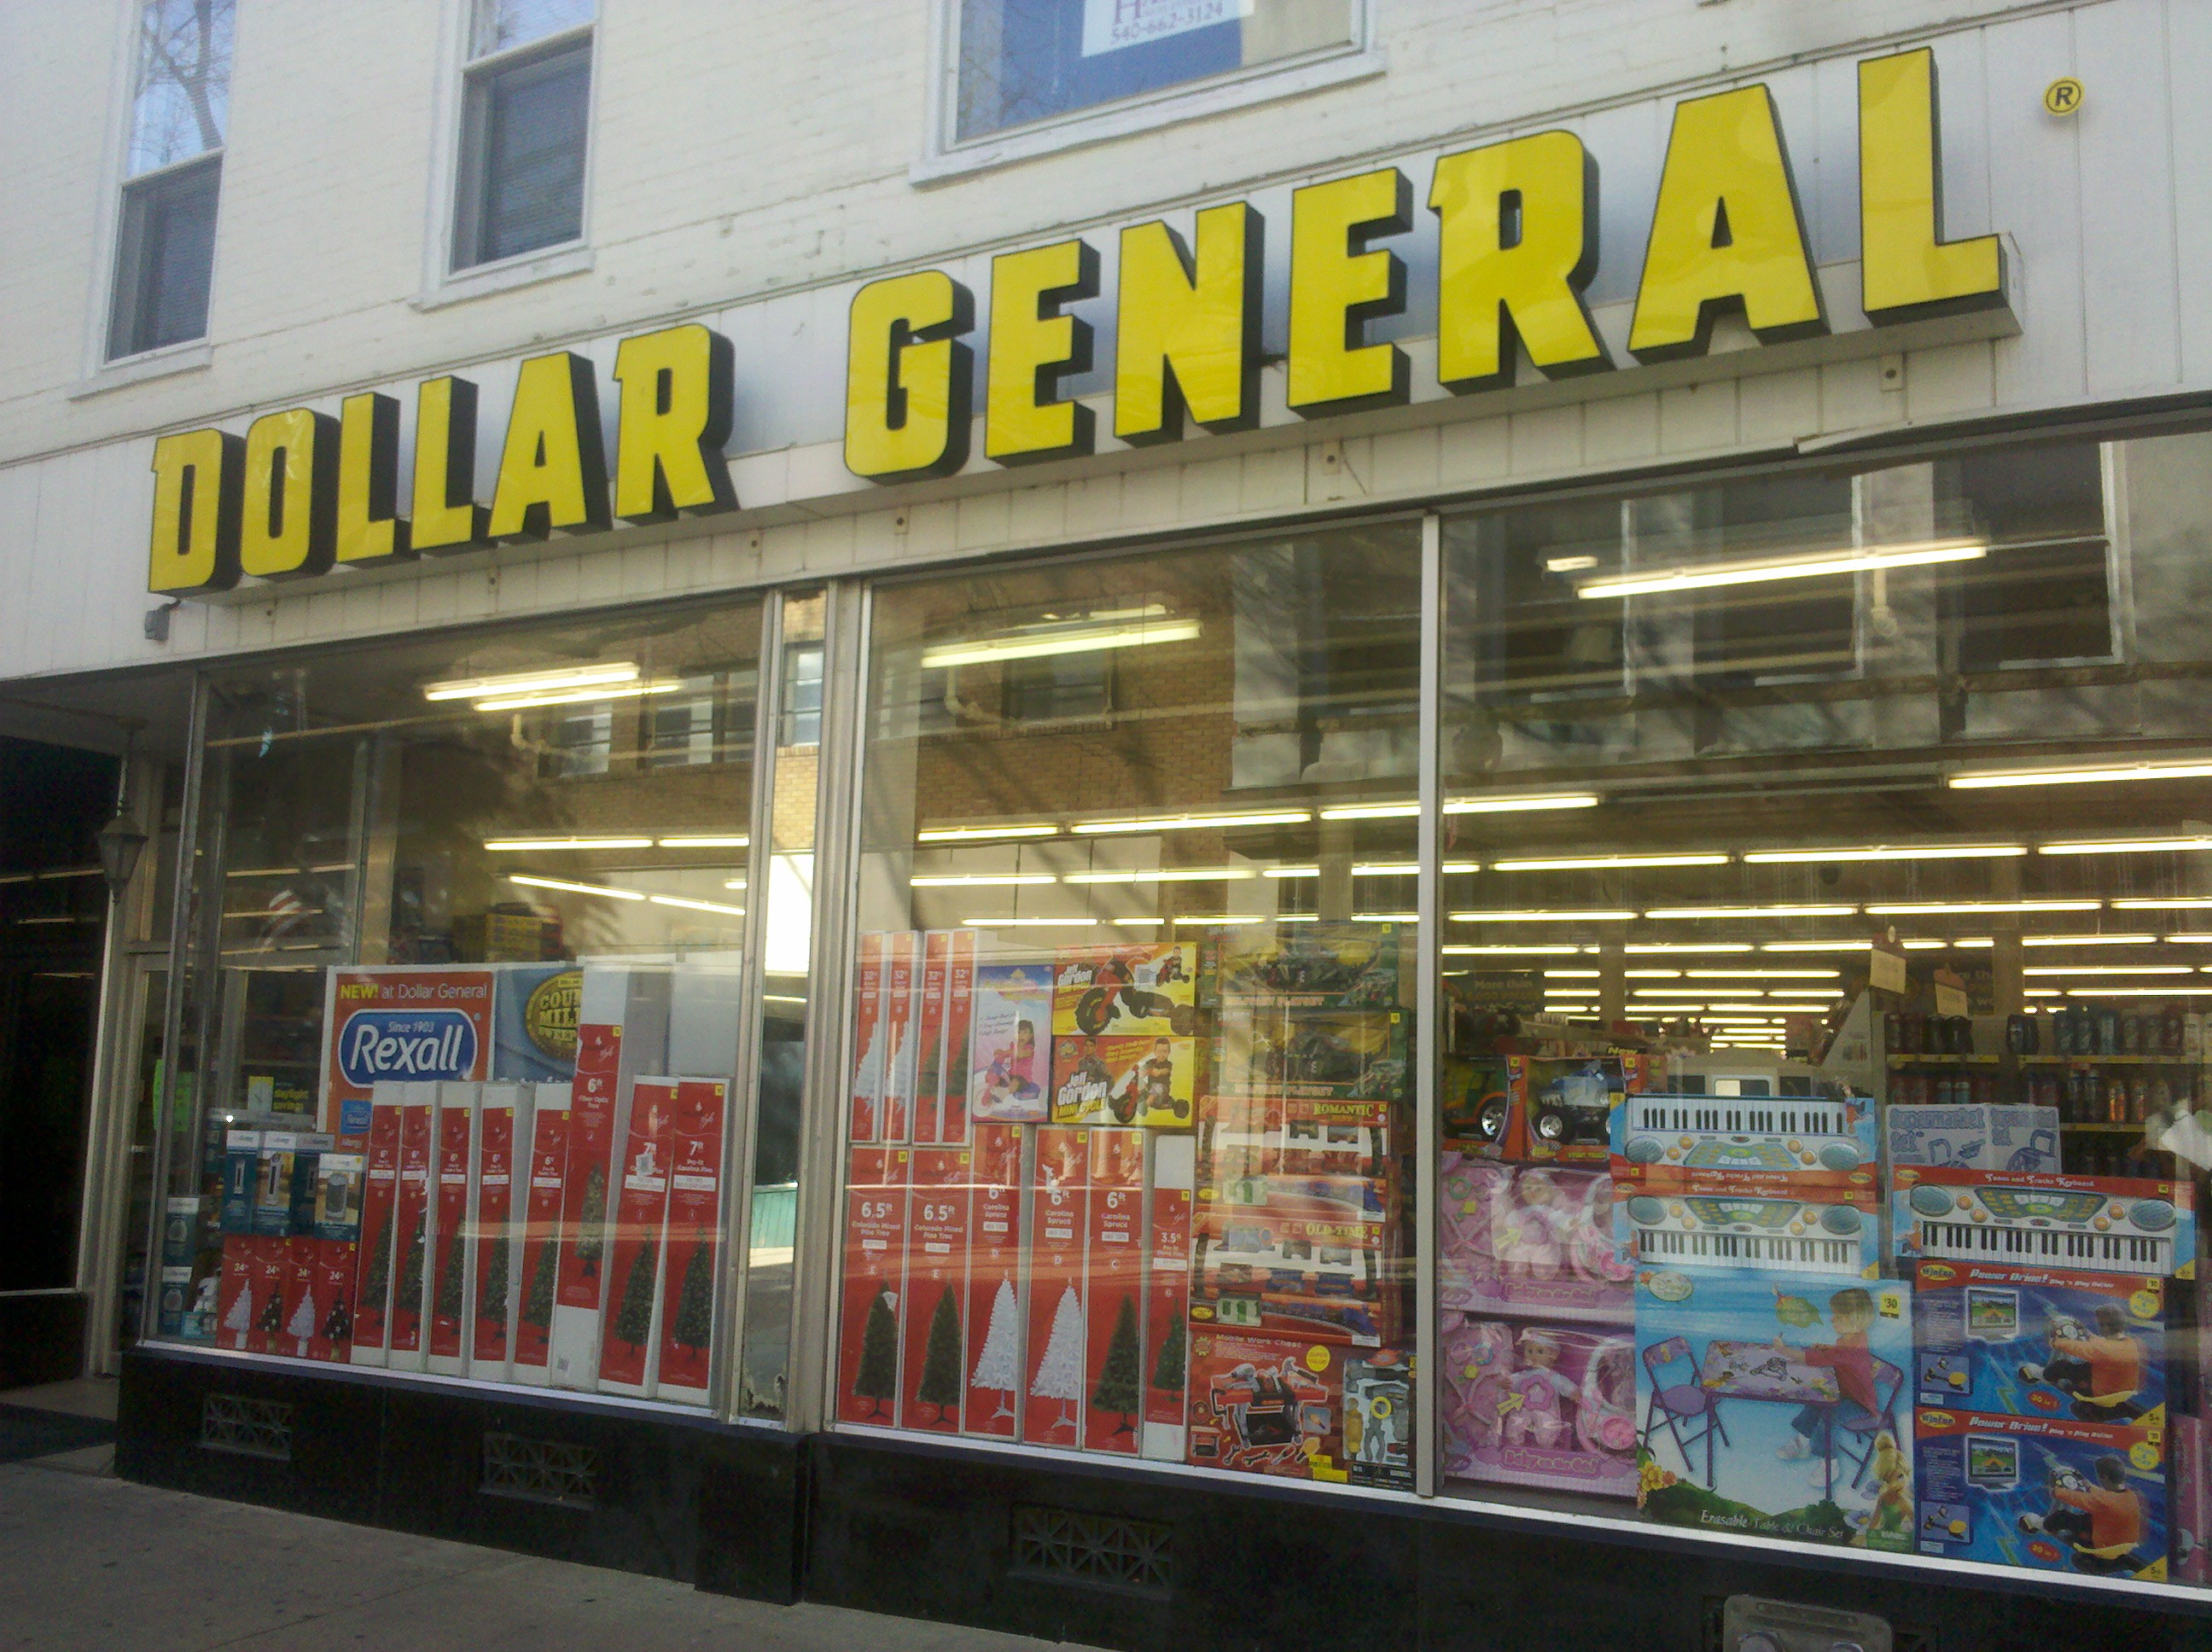 dollar general store Dollar general locations for sale and lease and other dollar general commercial property information dollar general is a current or former tenant or owner of the.